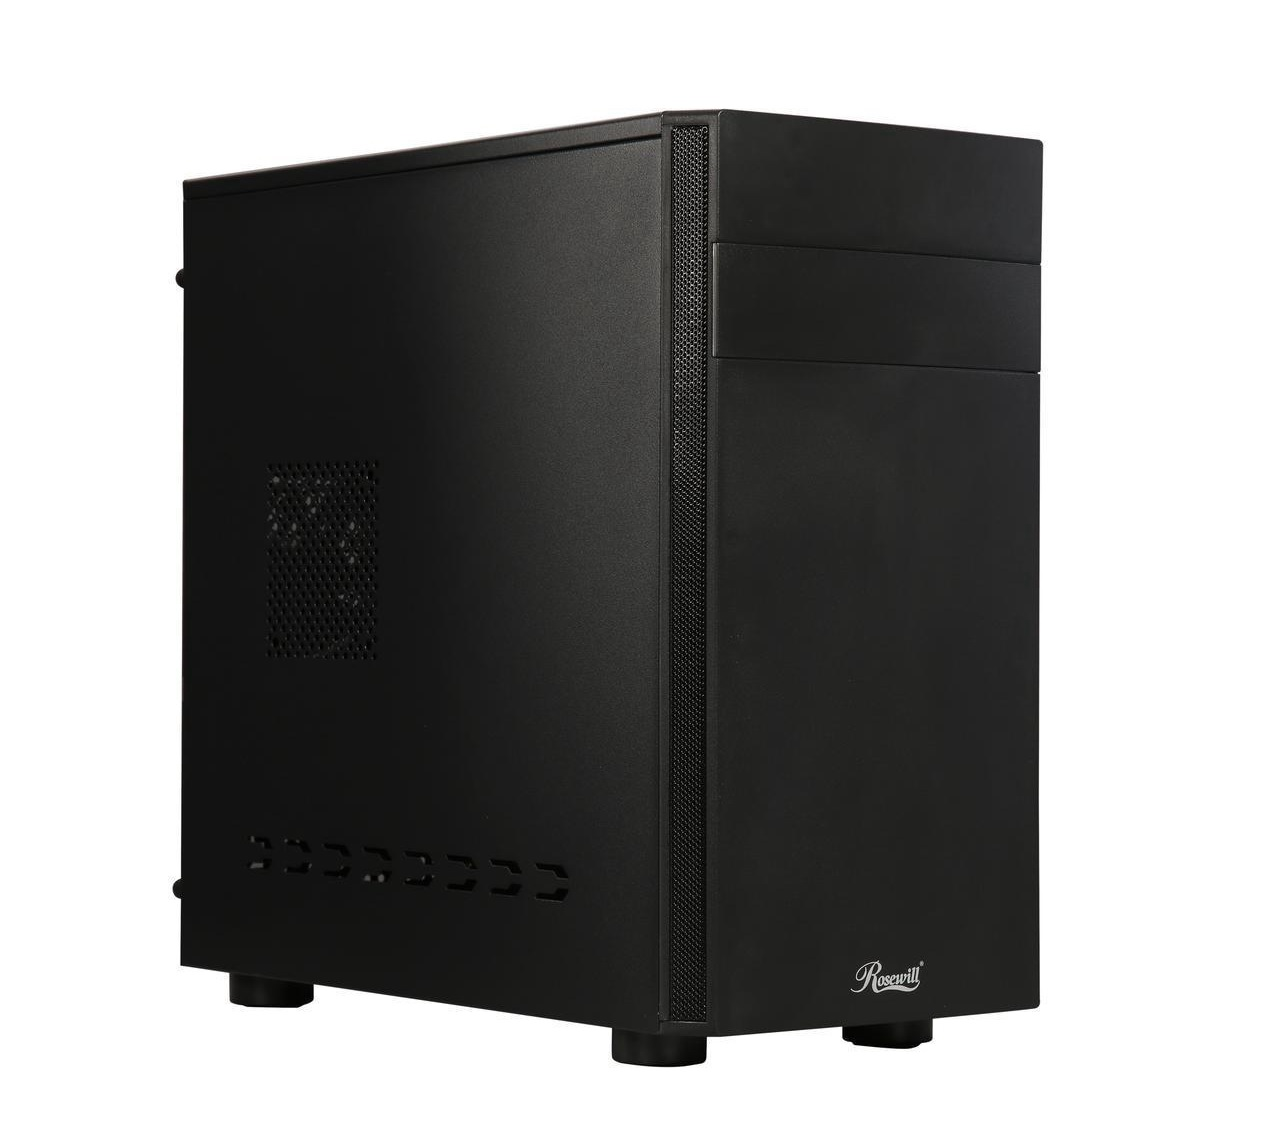 Rosewill FBM-06 Mini Tower Computer Case